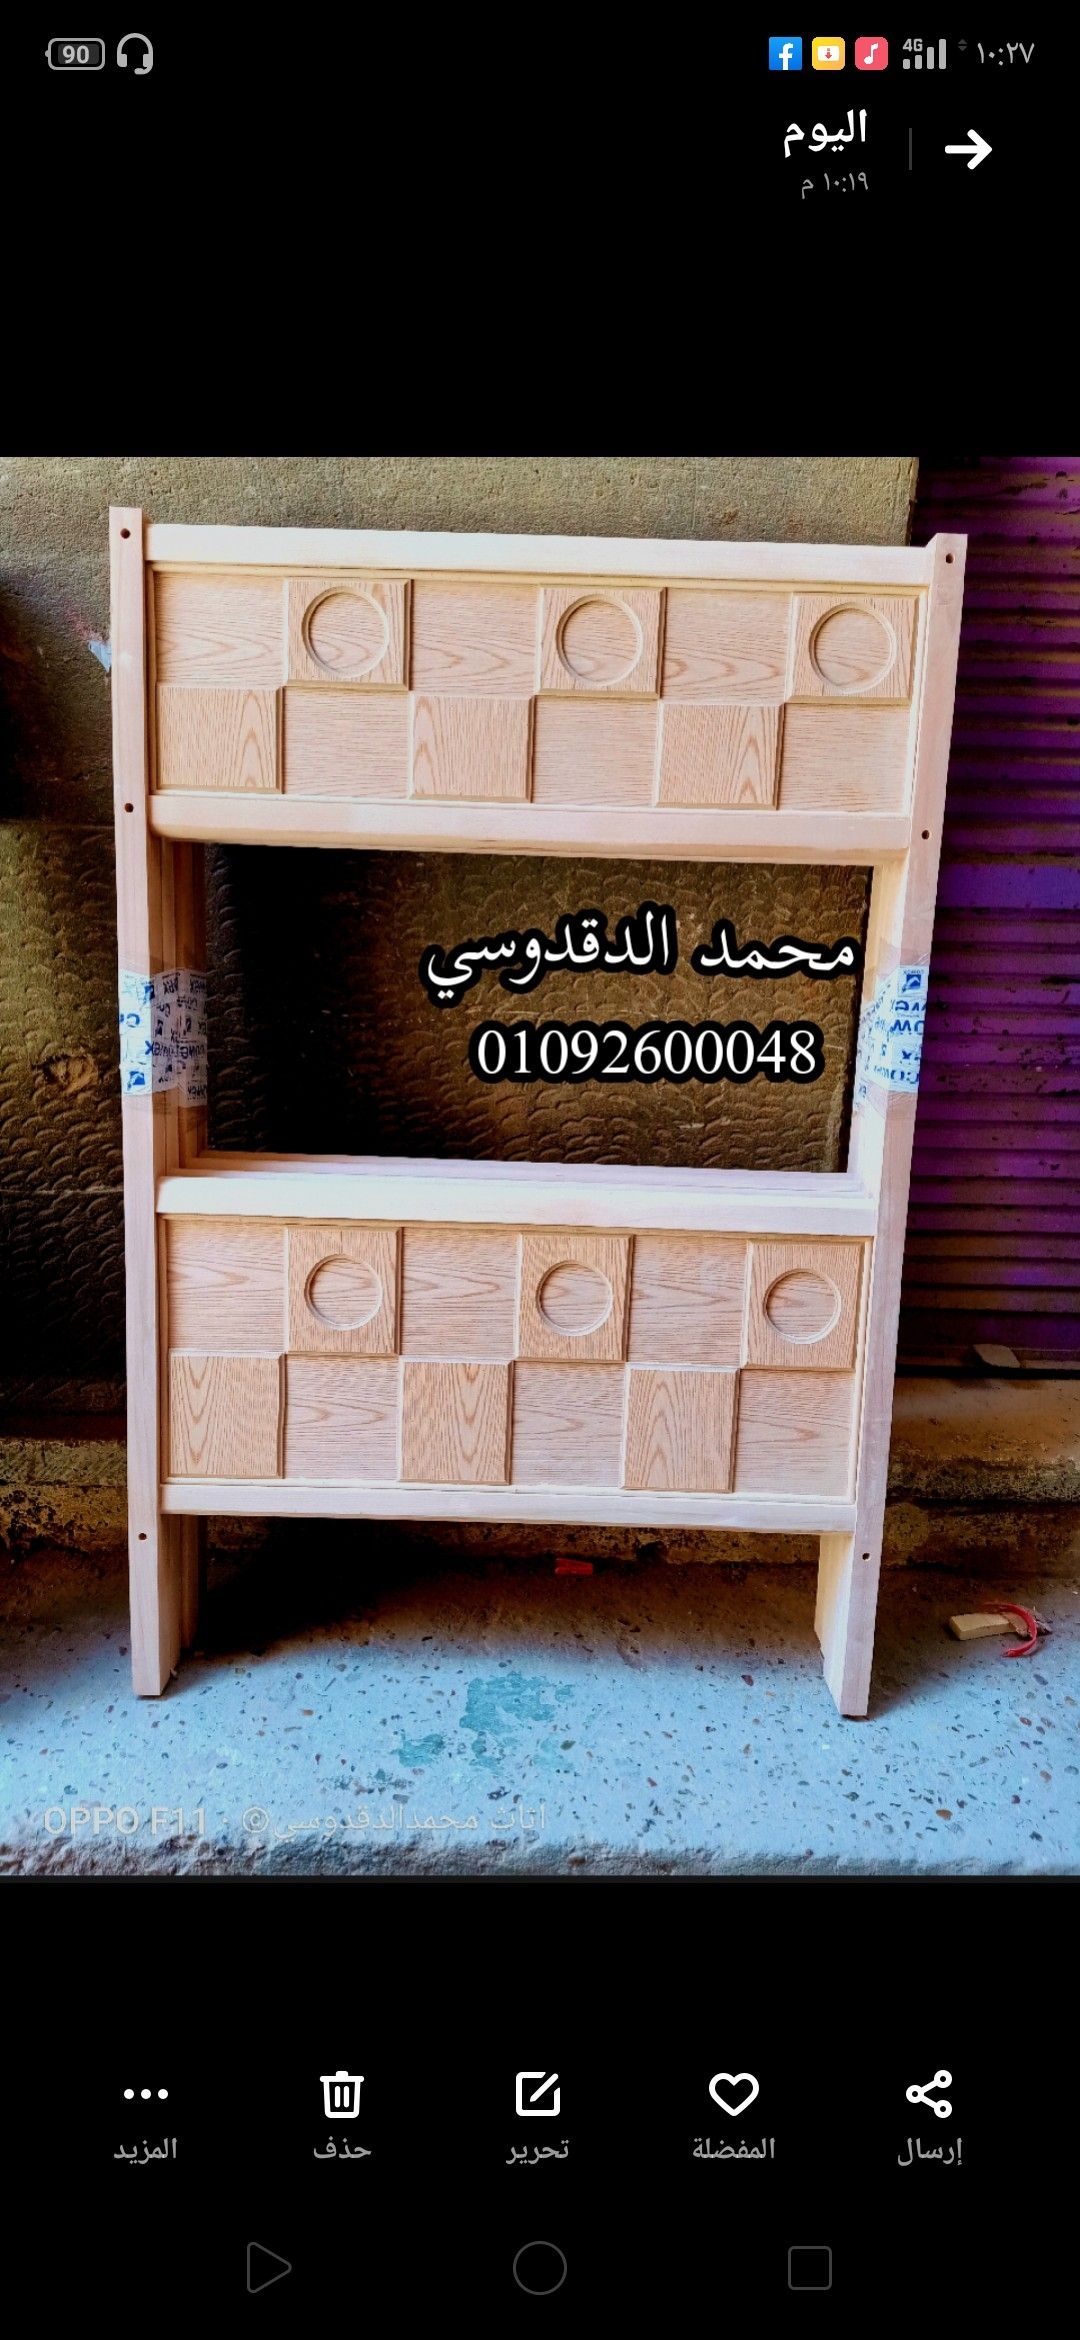 نجار اثاث منزلي Decor Home Decor Magazine Rack